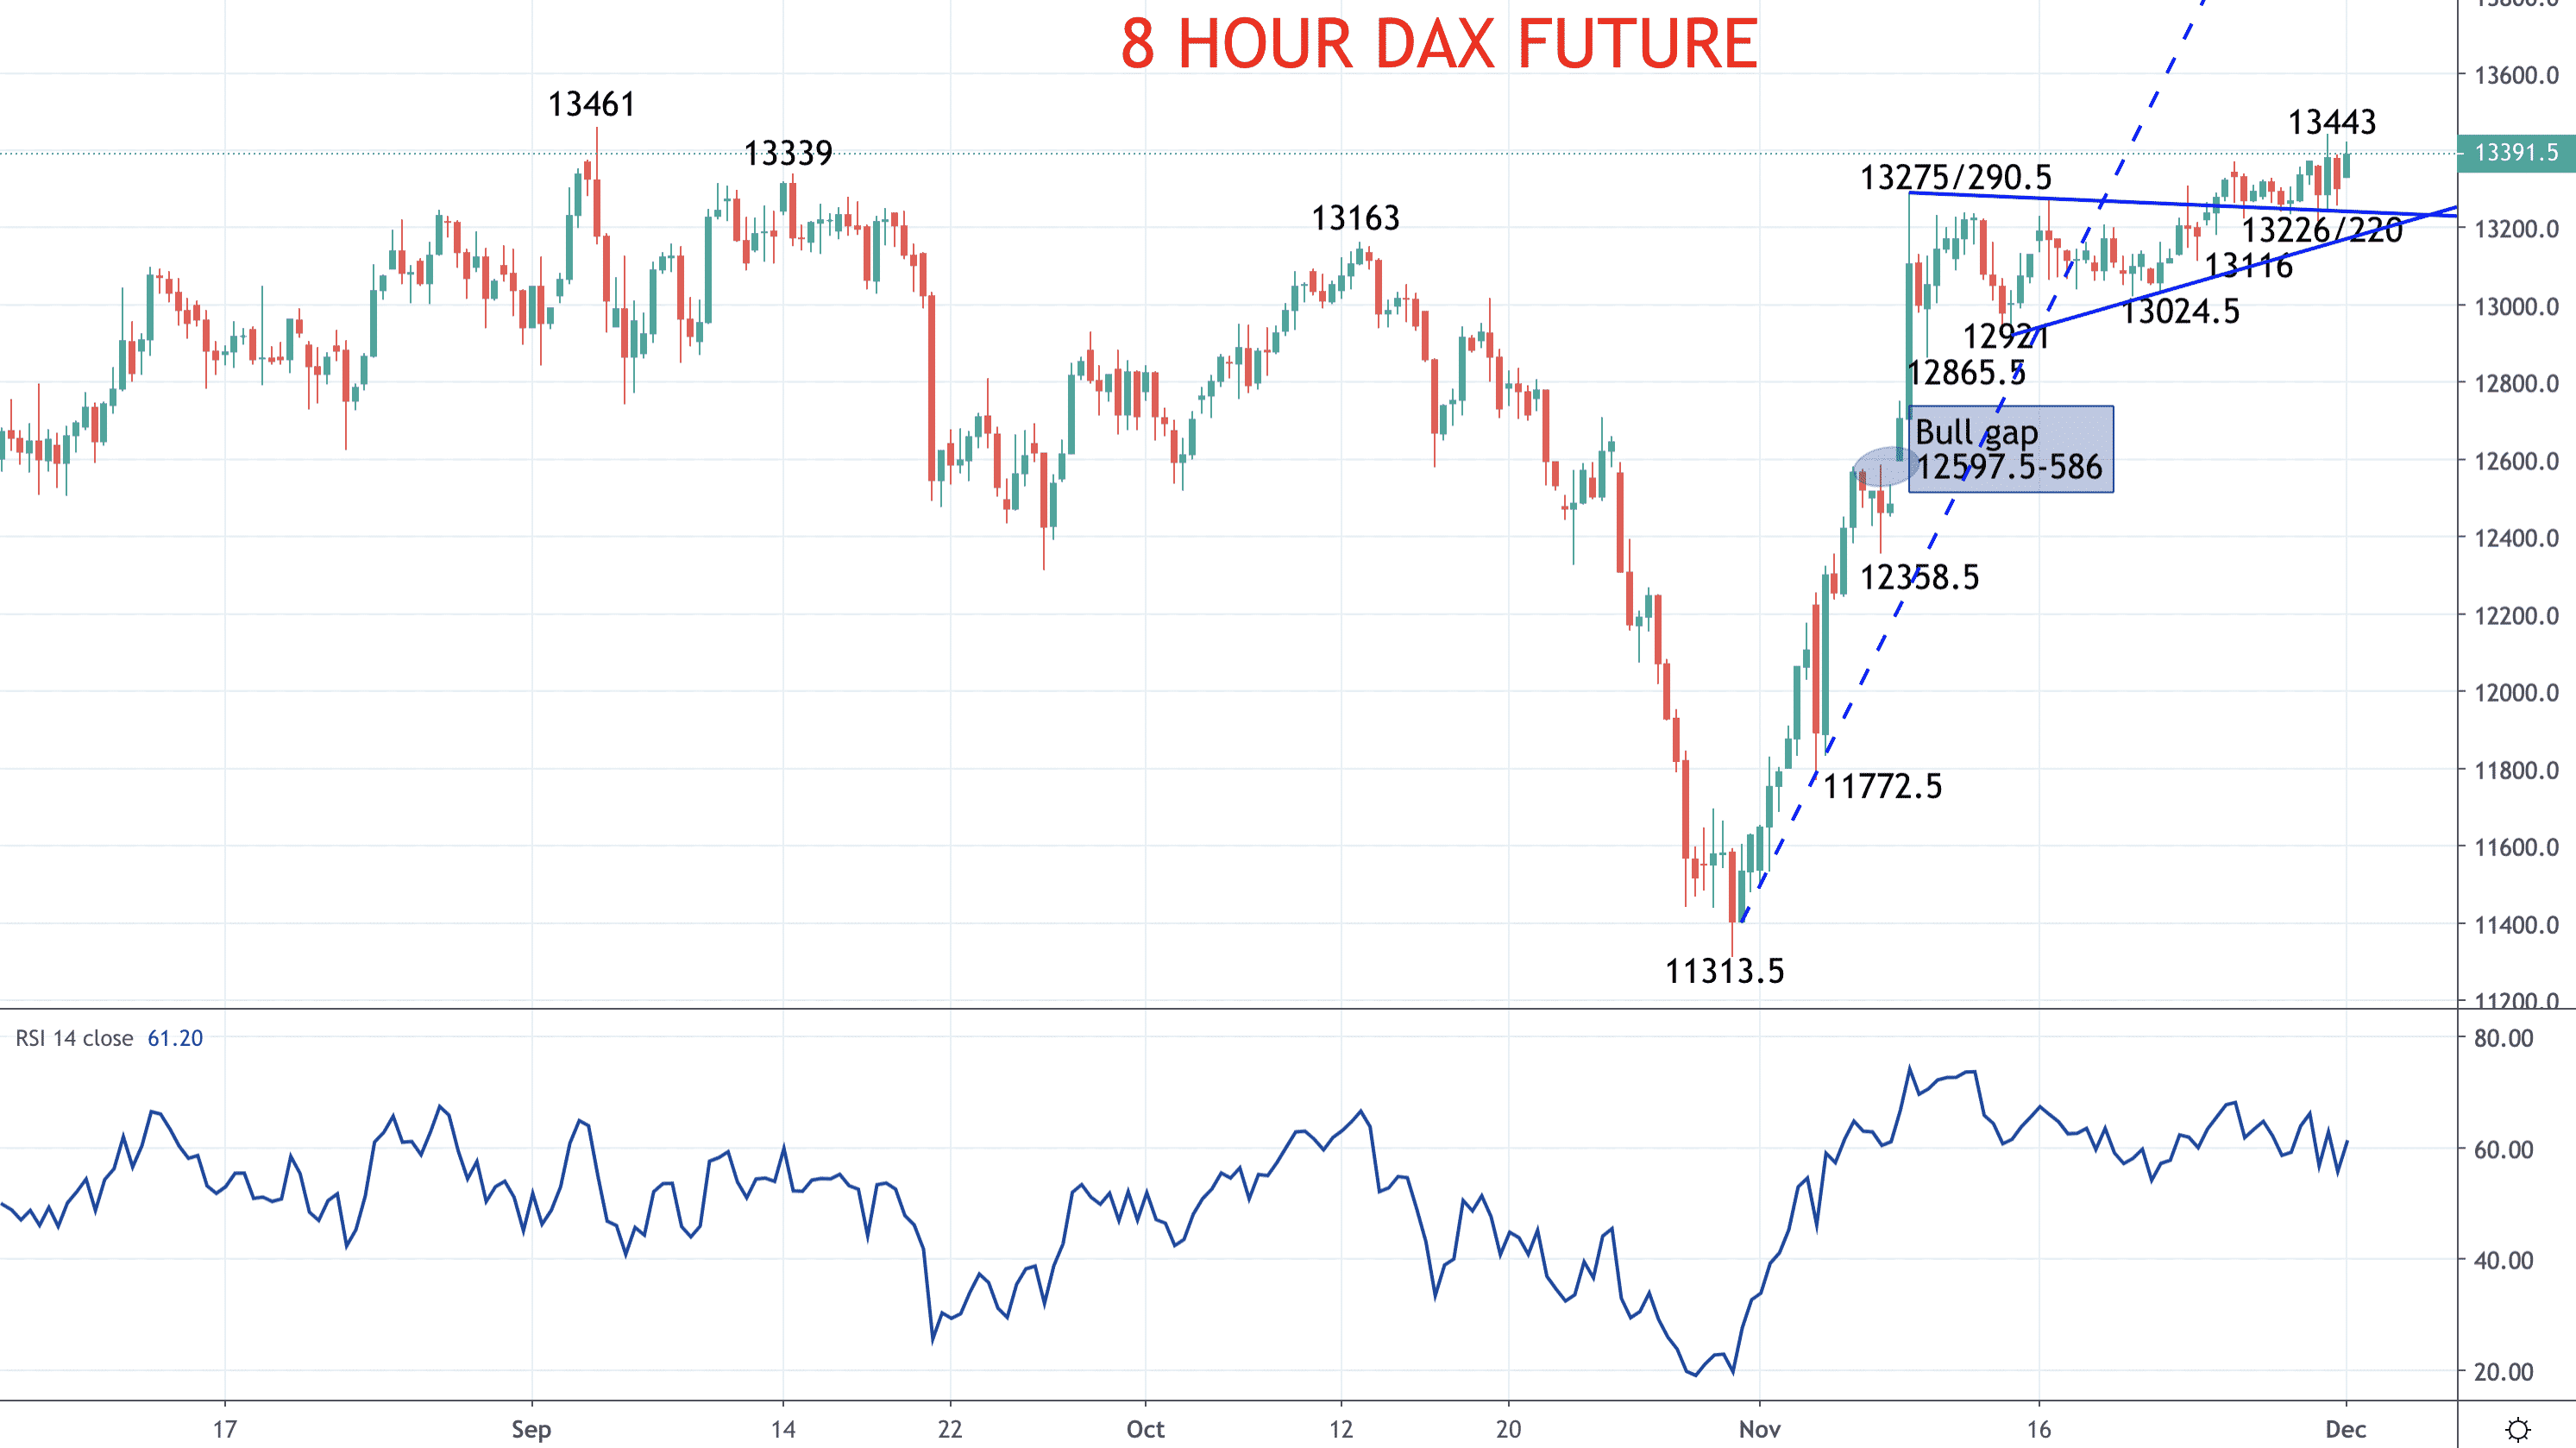 Bullish European stocks indices – DAX and EURO STOXX 50 forecast Image